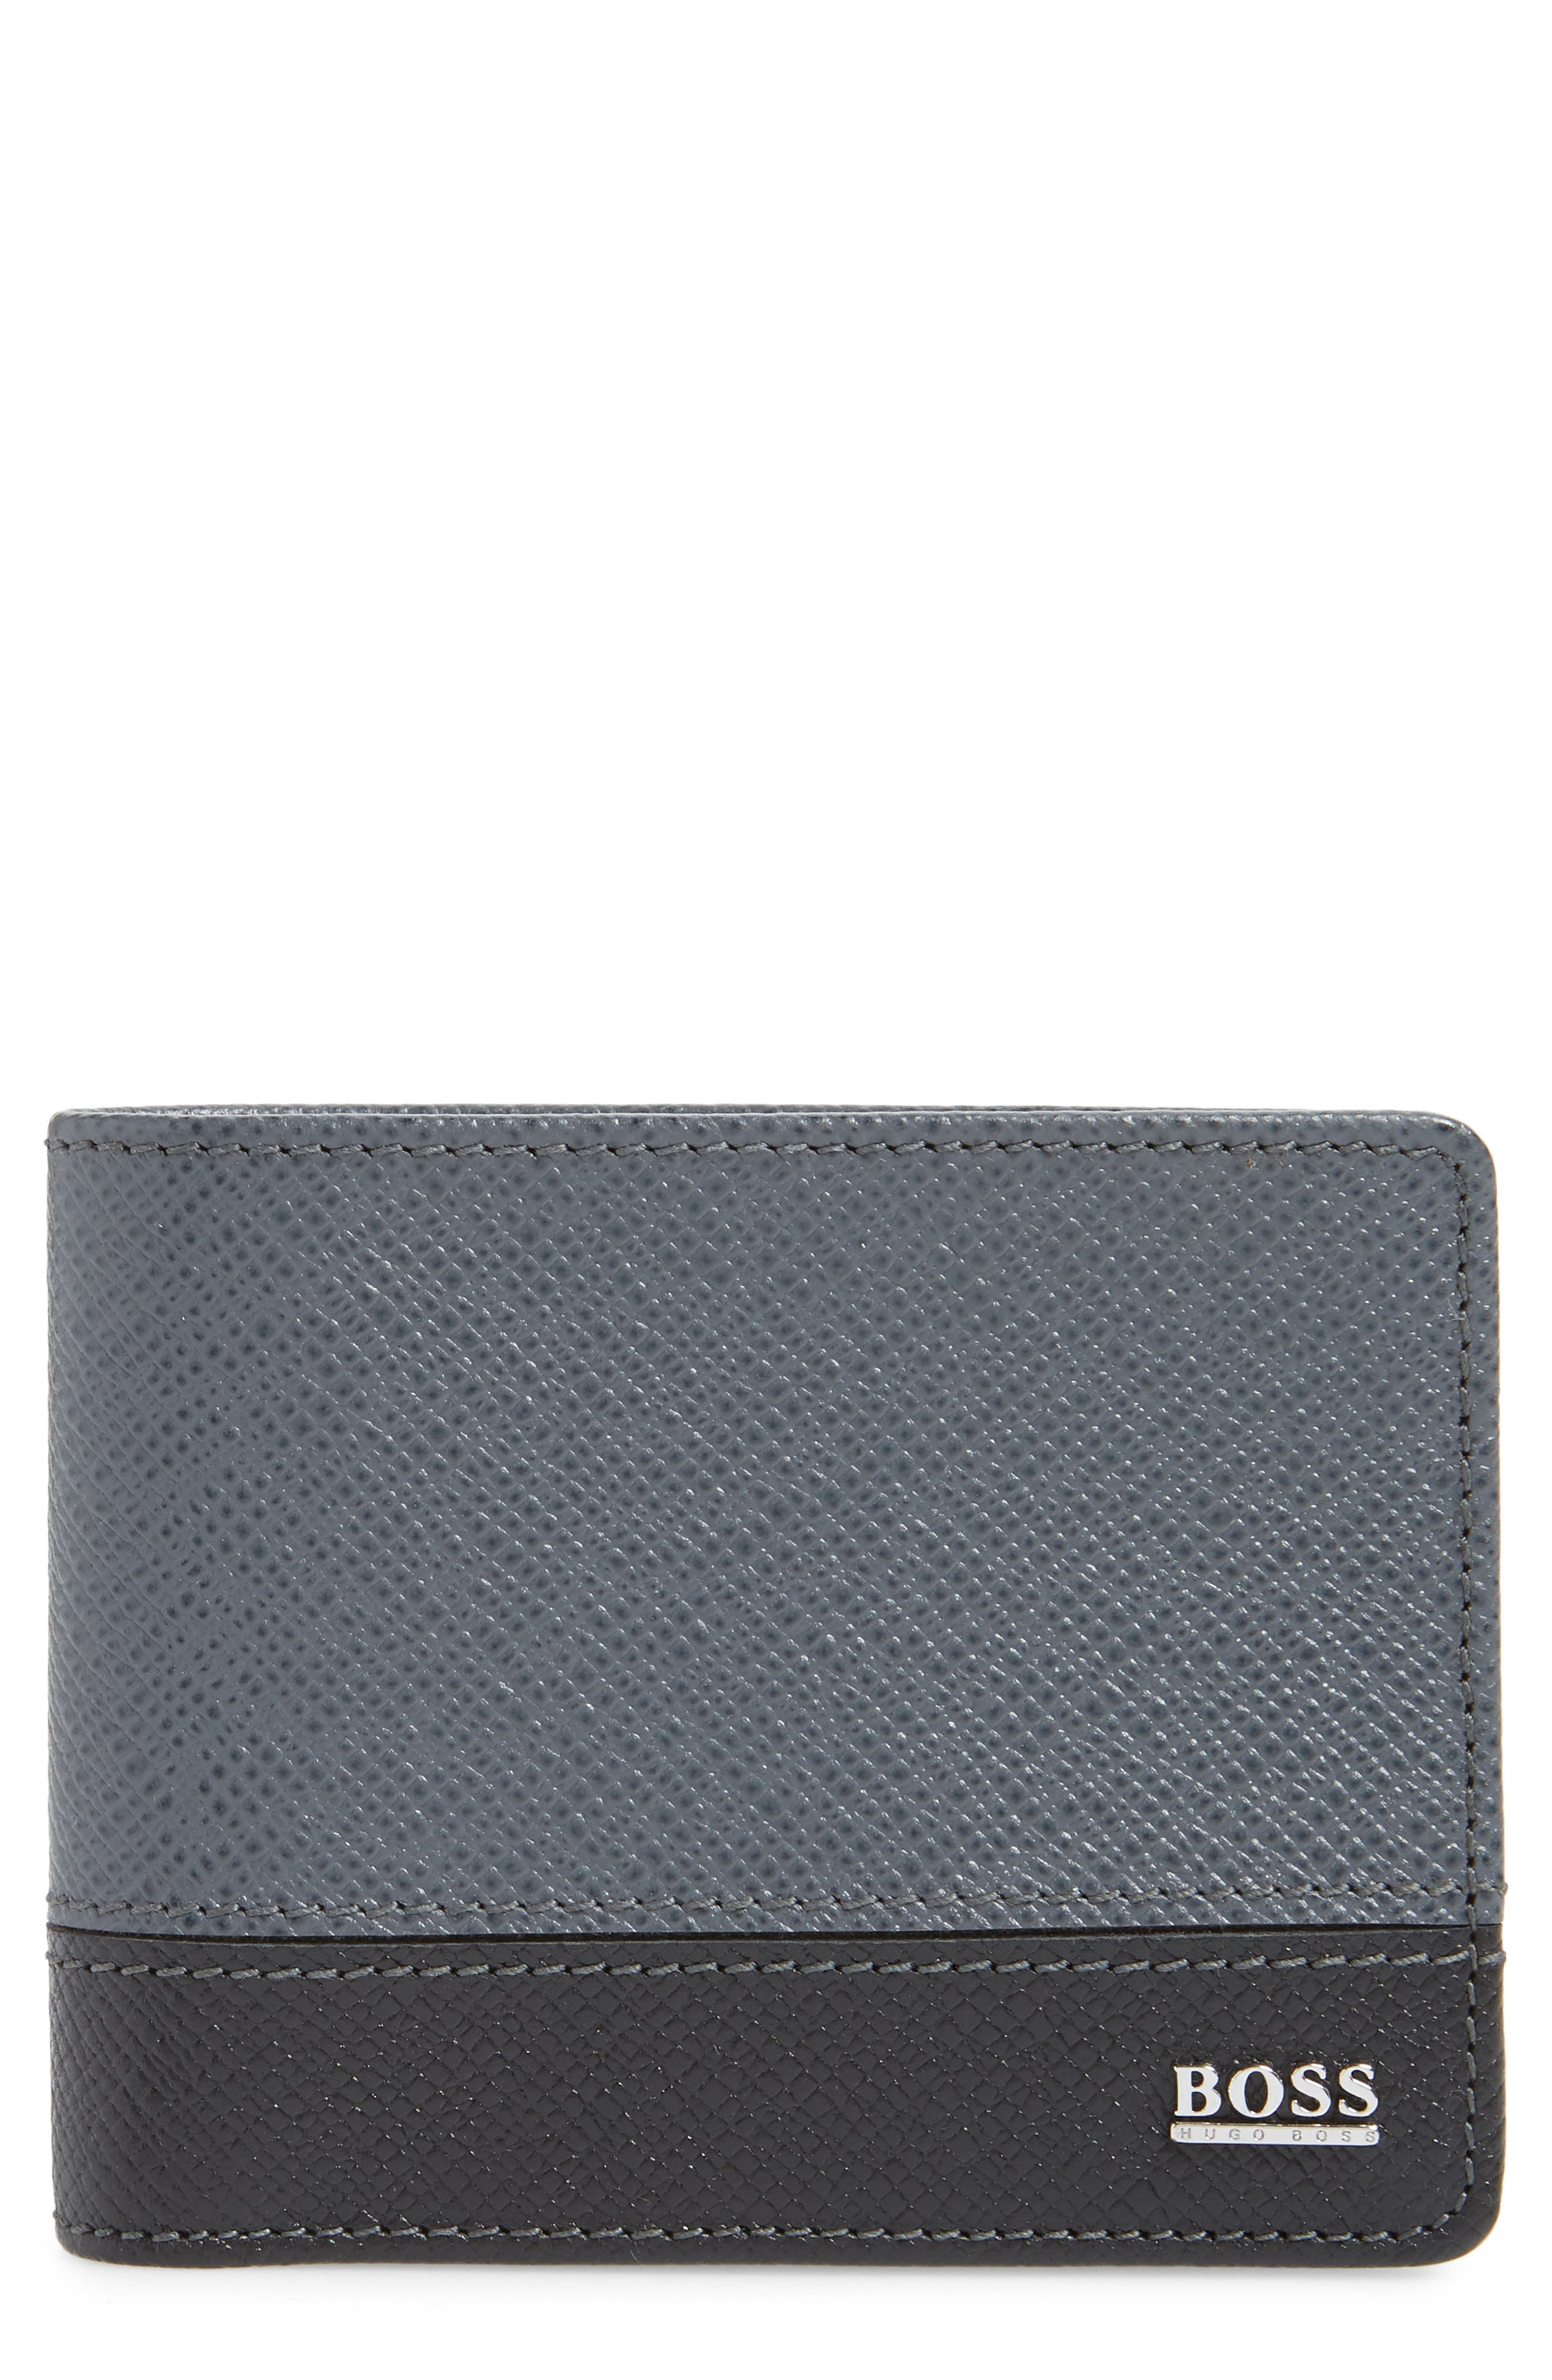 BOSS Embossed Leather Wallet, Main, color, DARK GREY